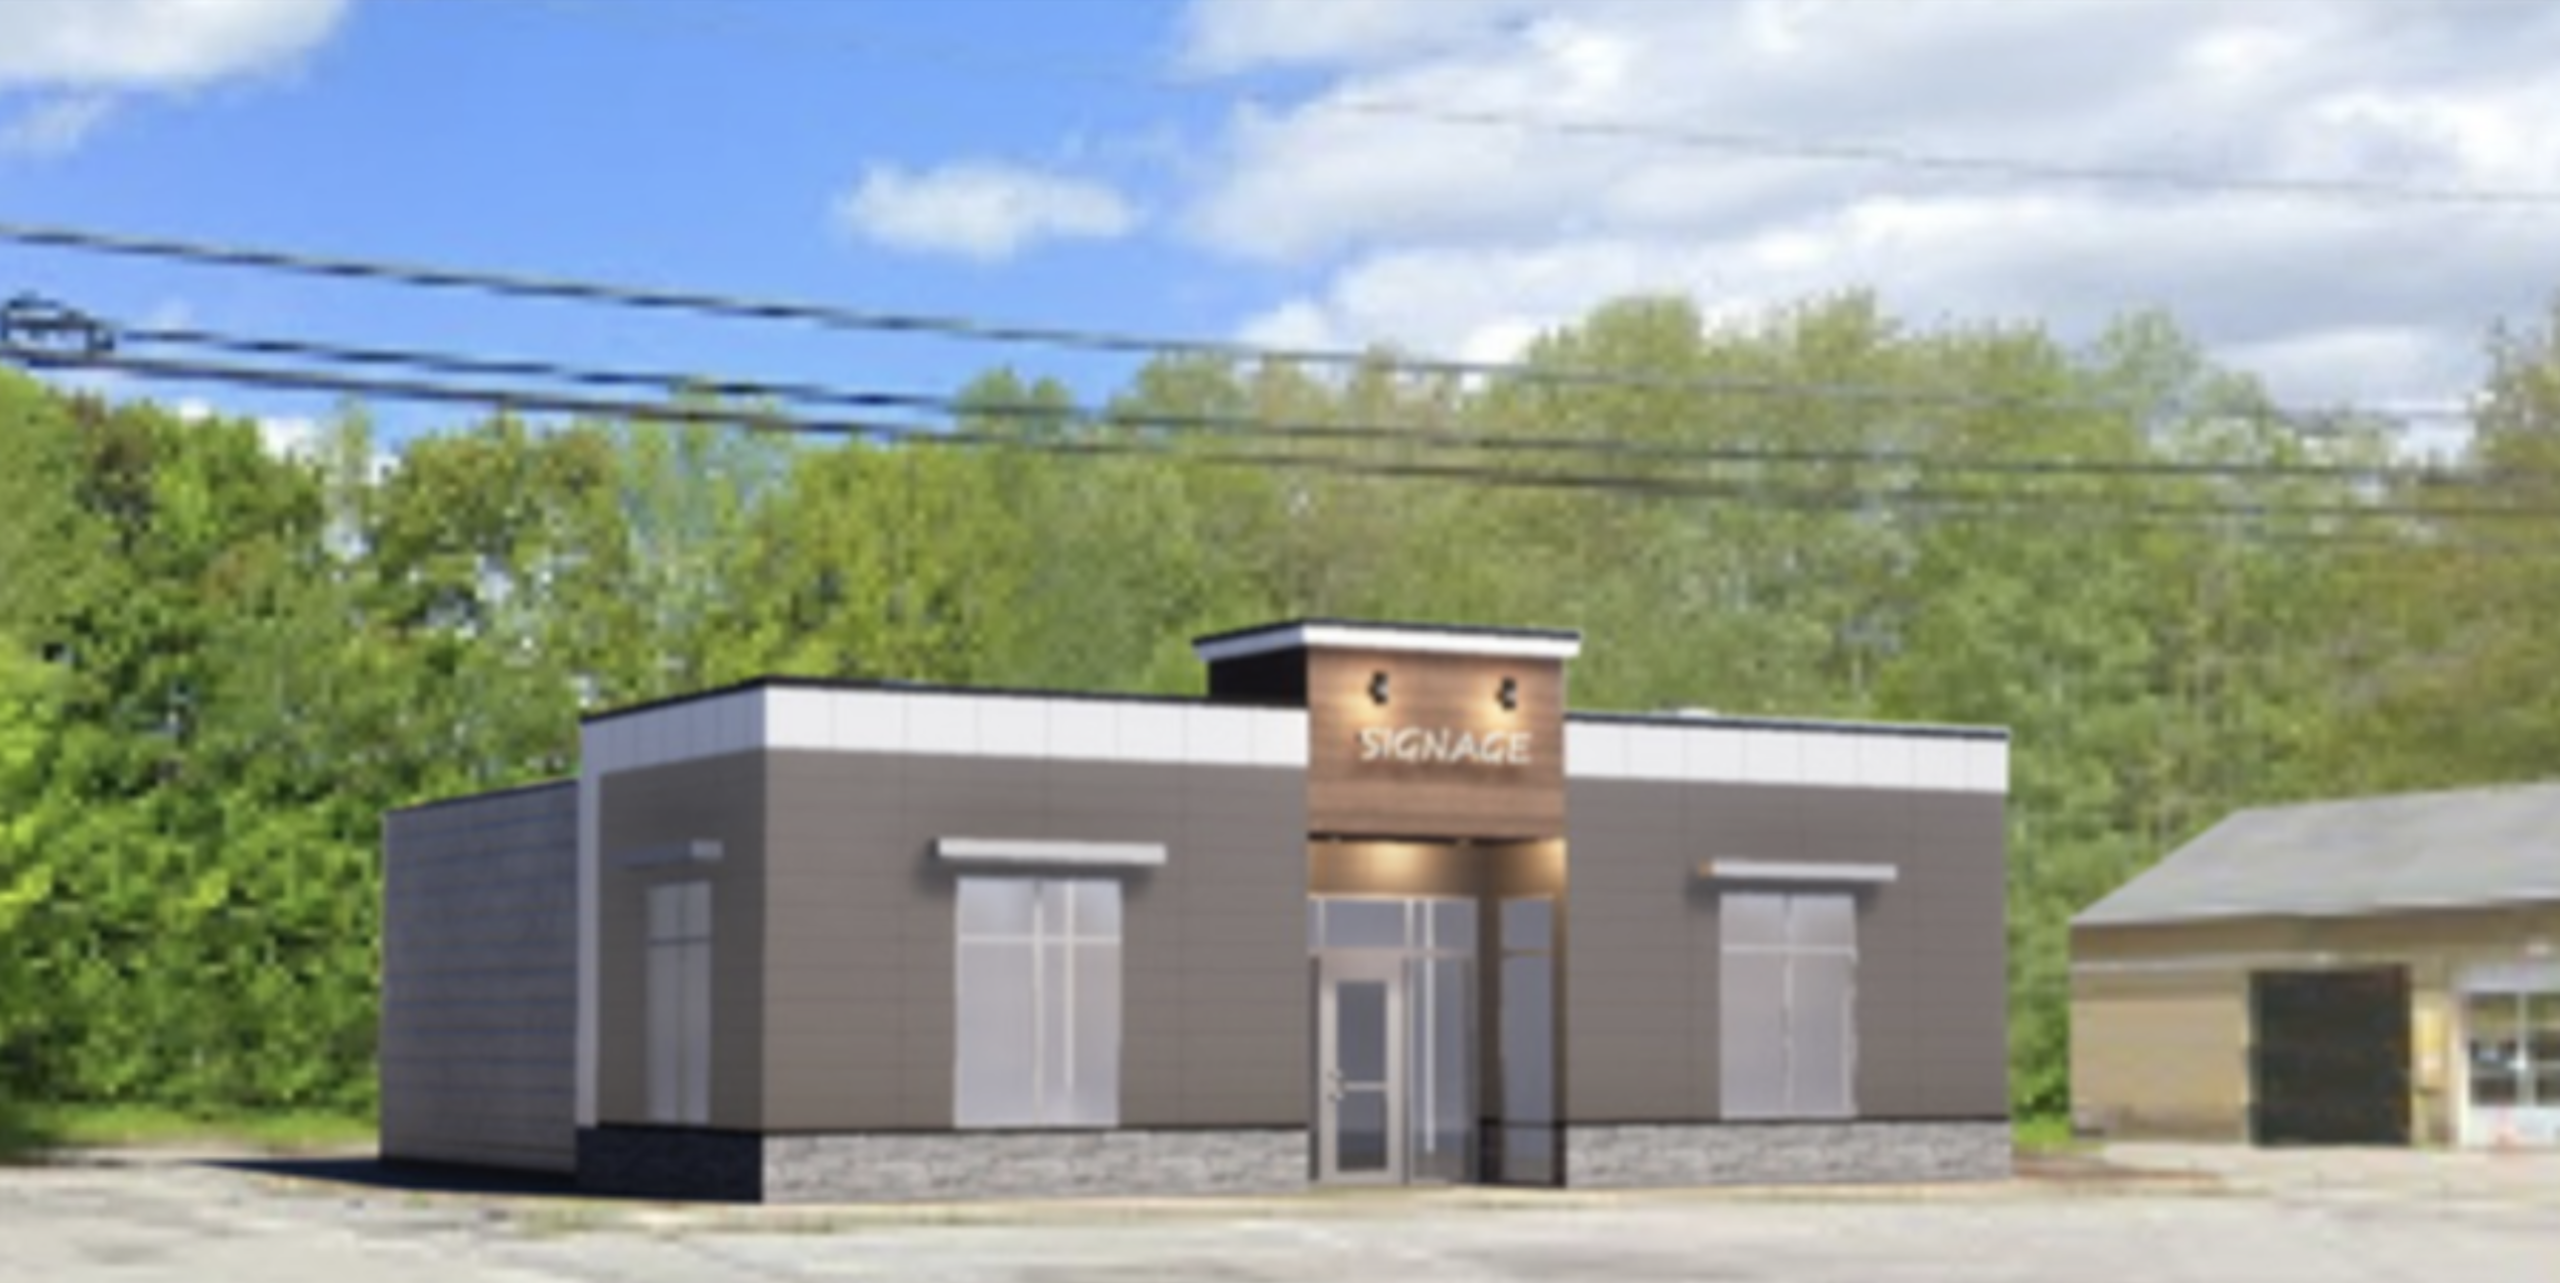 Commercial Property for Lease being built at 1128 Lisbon Street in Lewiston